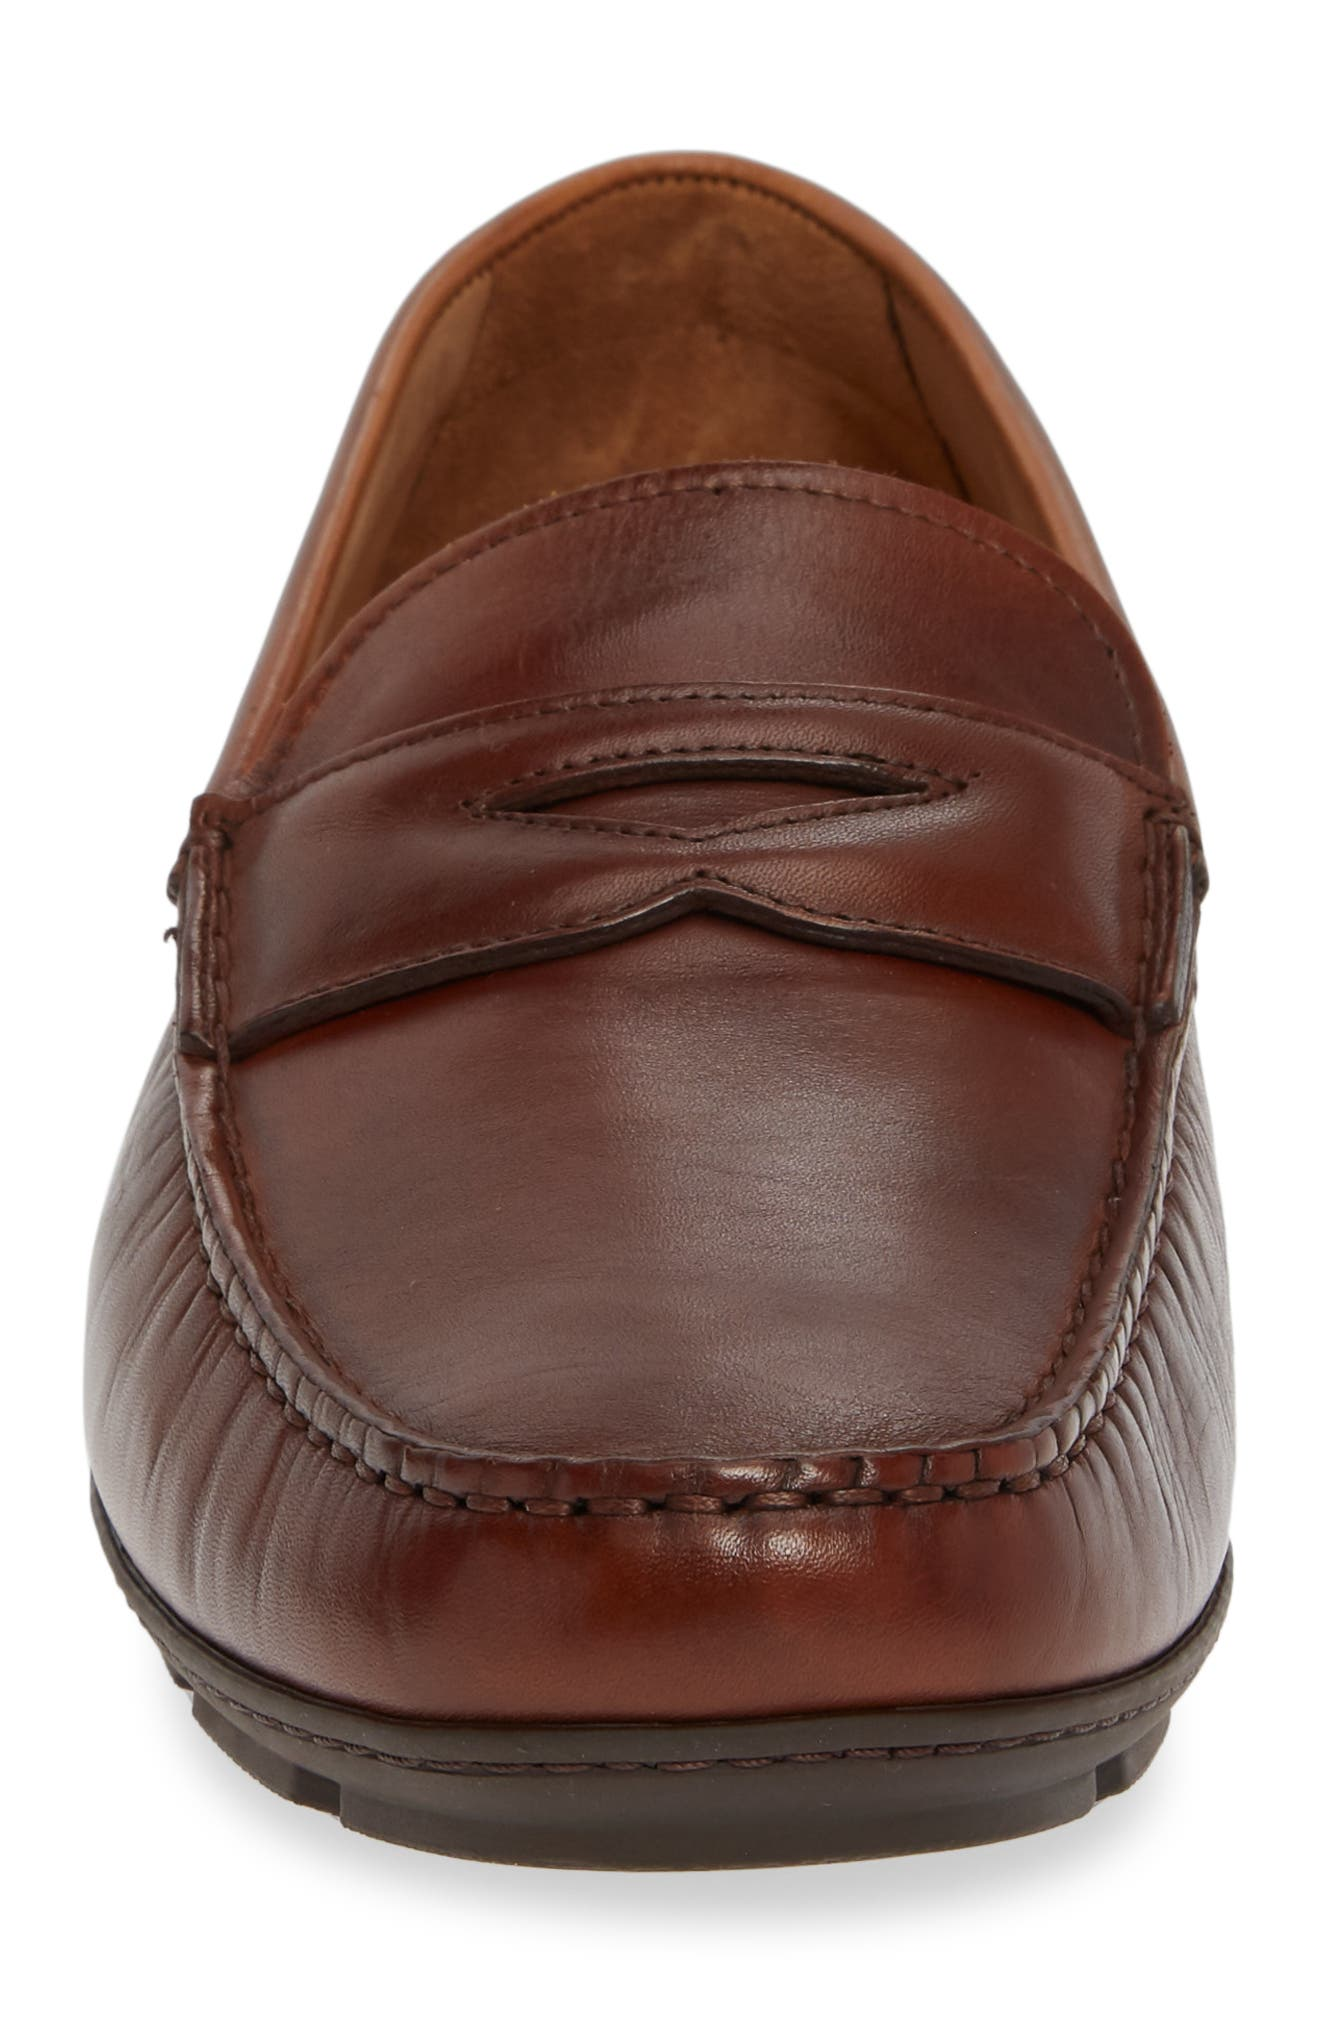 VINCE CAMUTO, Ditto Driving Shoe, Alternate thumbnail 4, color, COGNAC LEATHER